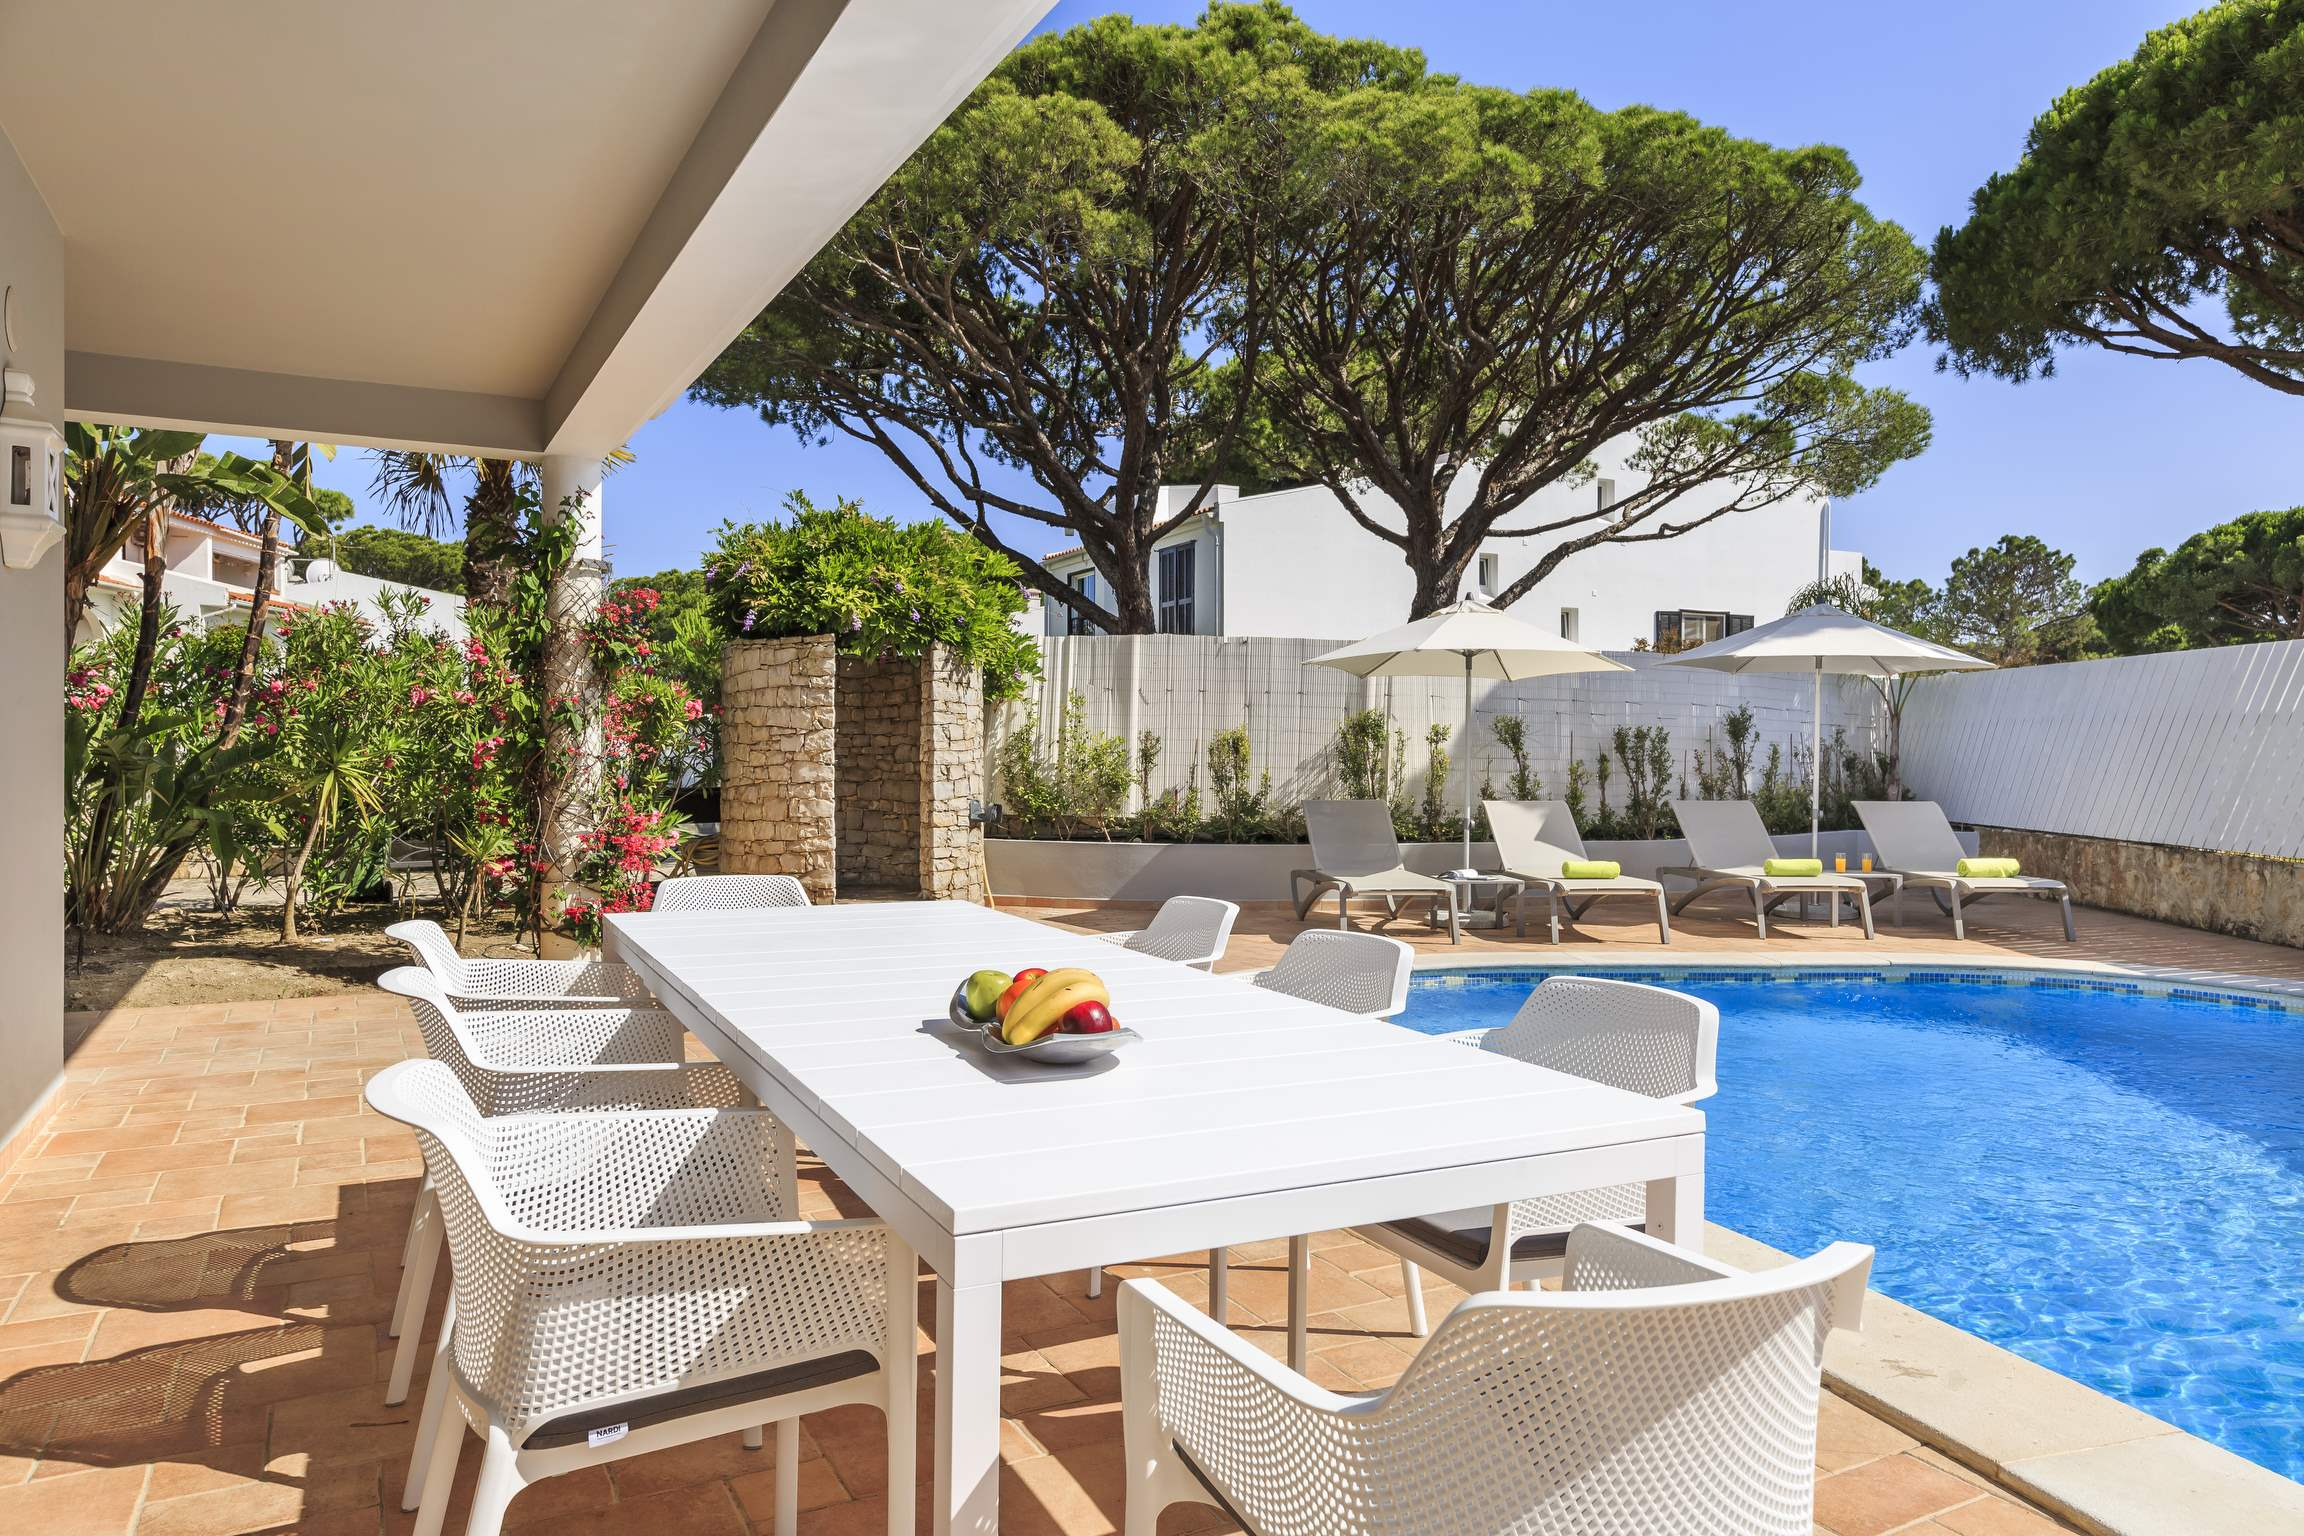 Casa Potes, 5 bedroom villa in Vale do Lobo, Algarve Photo #2